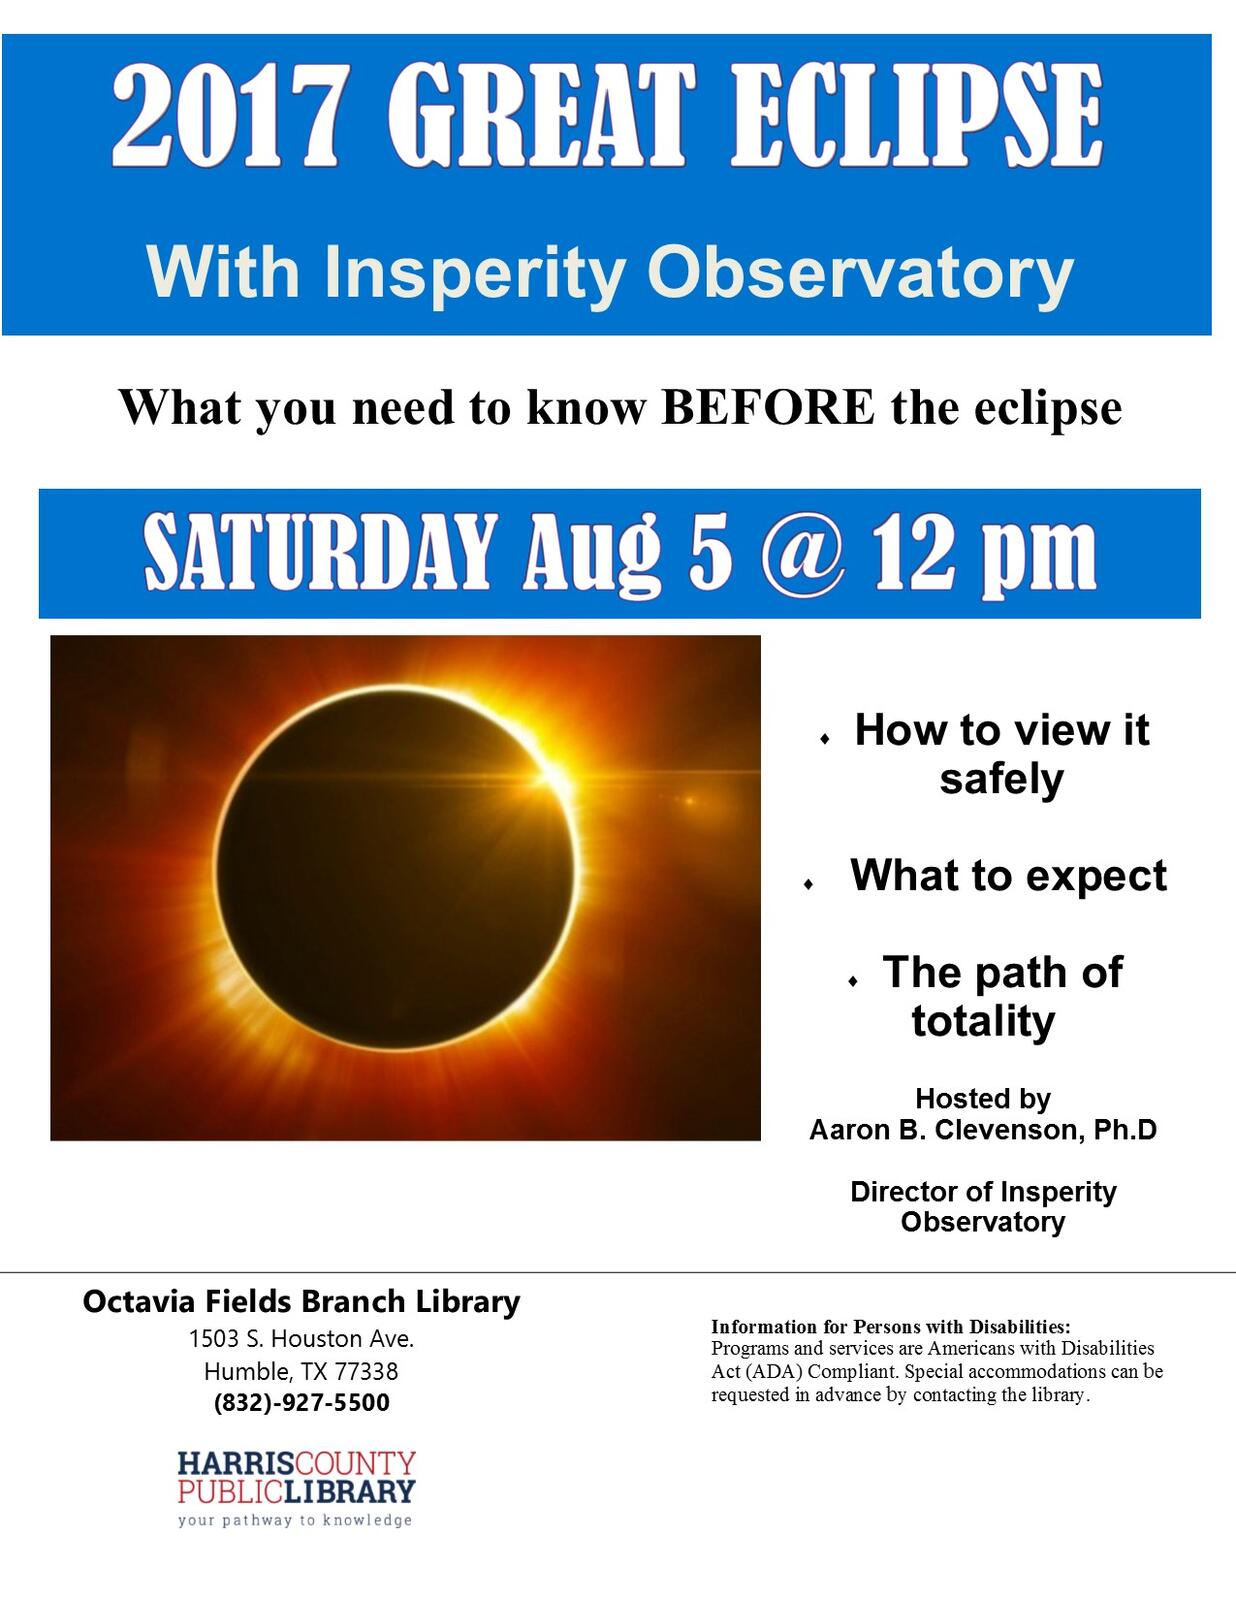 2017 Great Eclipse with Insperity Obeservatory - Octavia